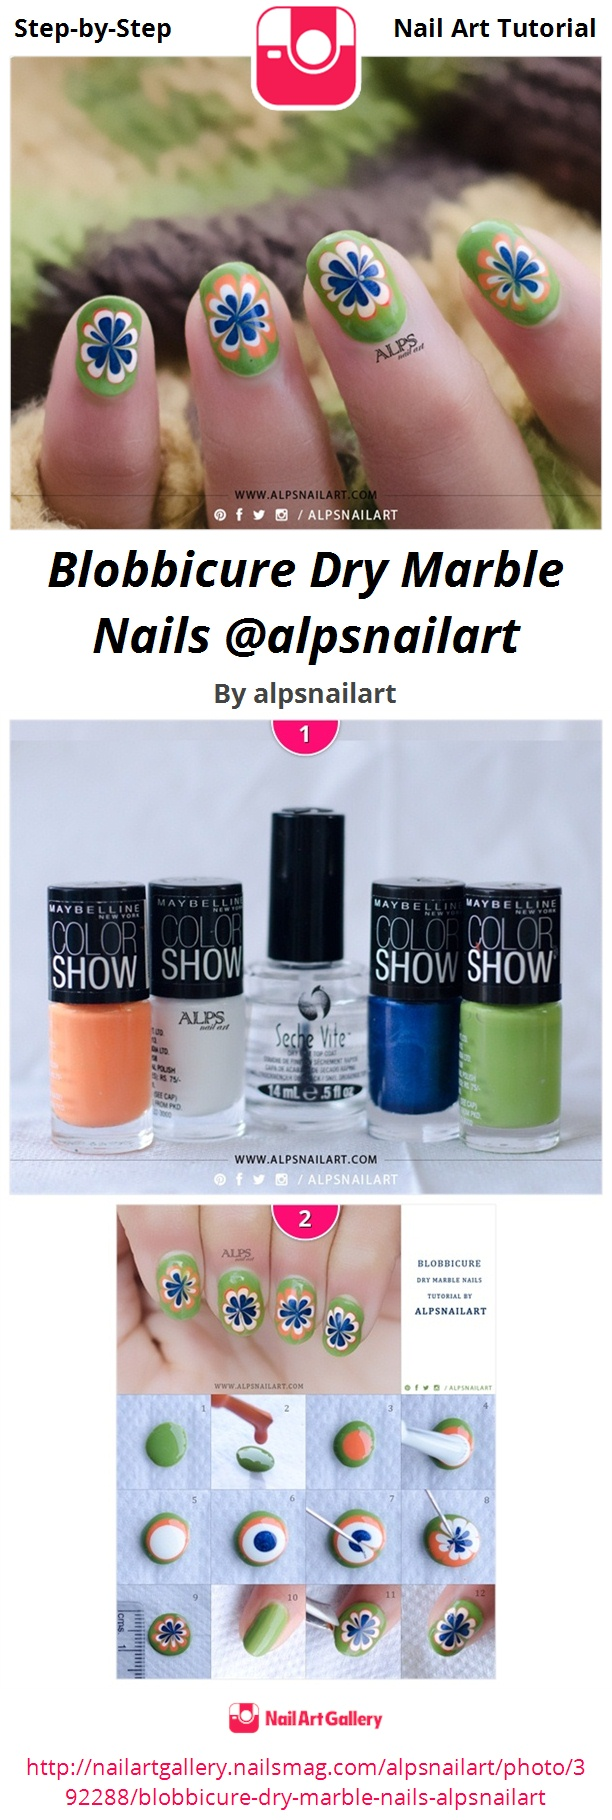 Blobbicure Dry Marble Nails @alpsnailart - Nail Art Gallery Step-by ...